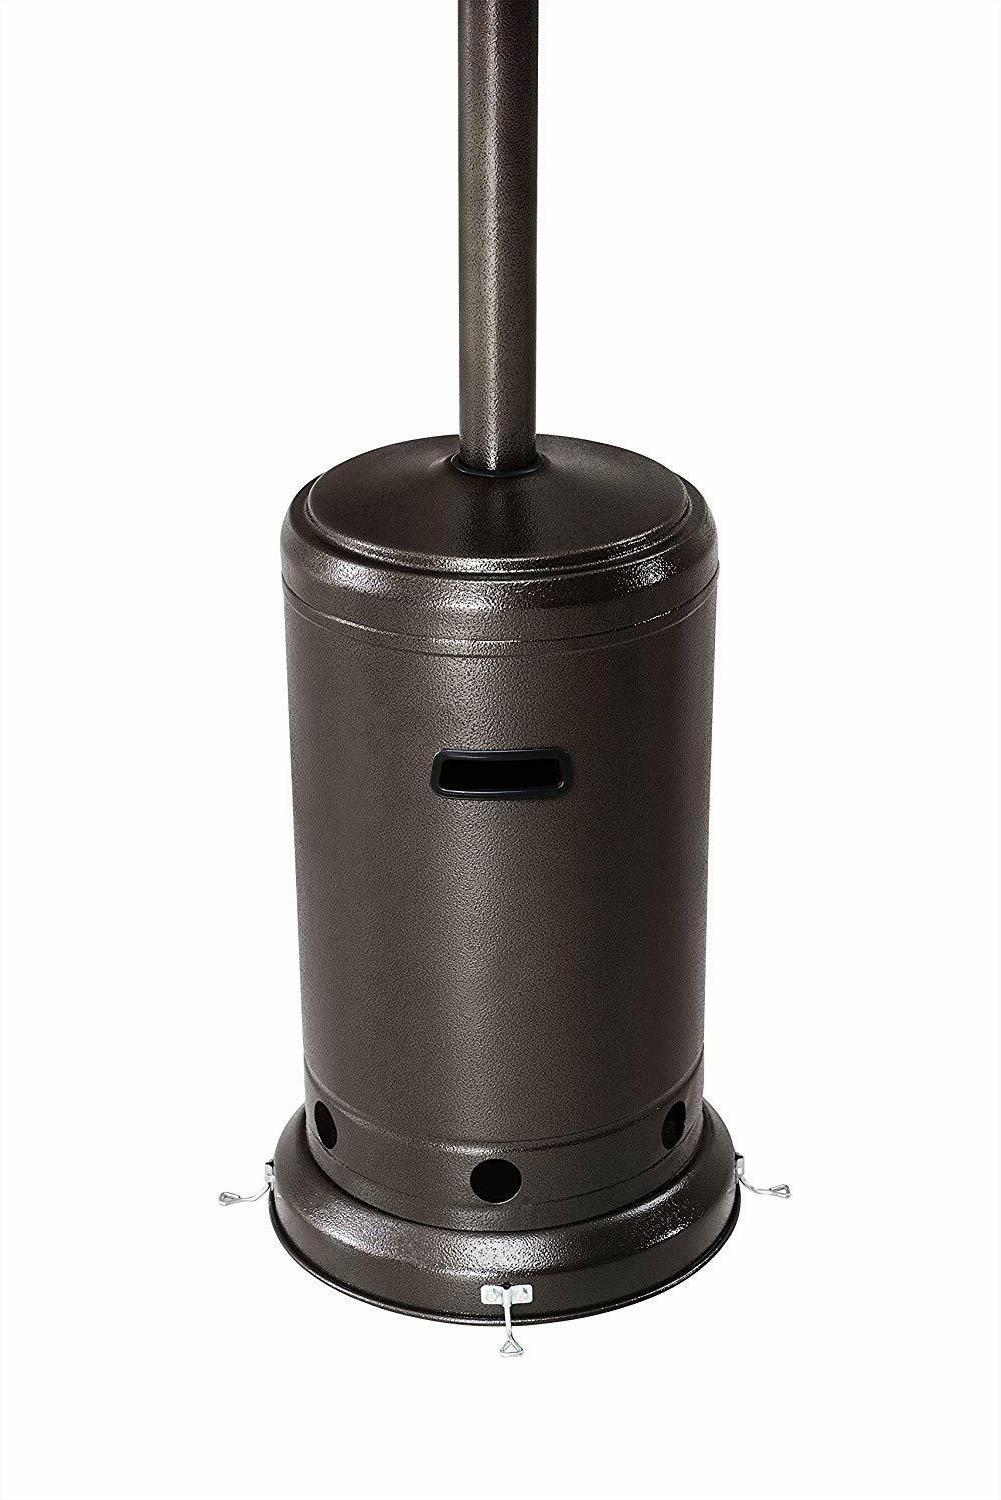 Sunjoy Lawrence Heater, Bronze Finished